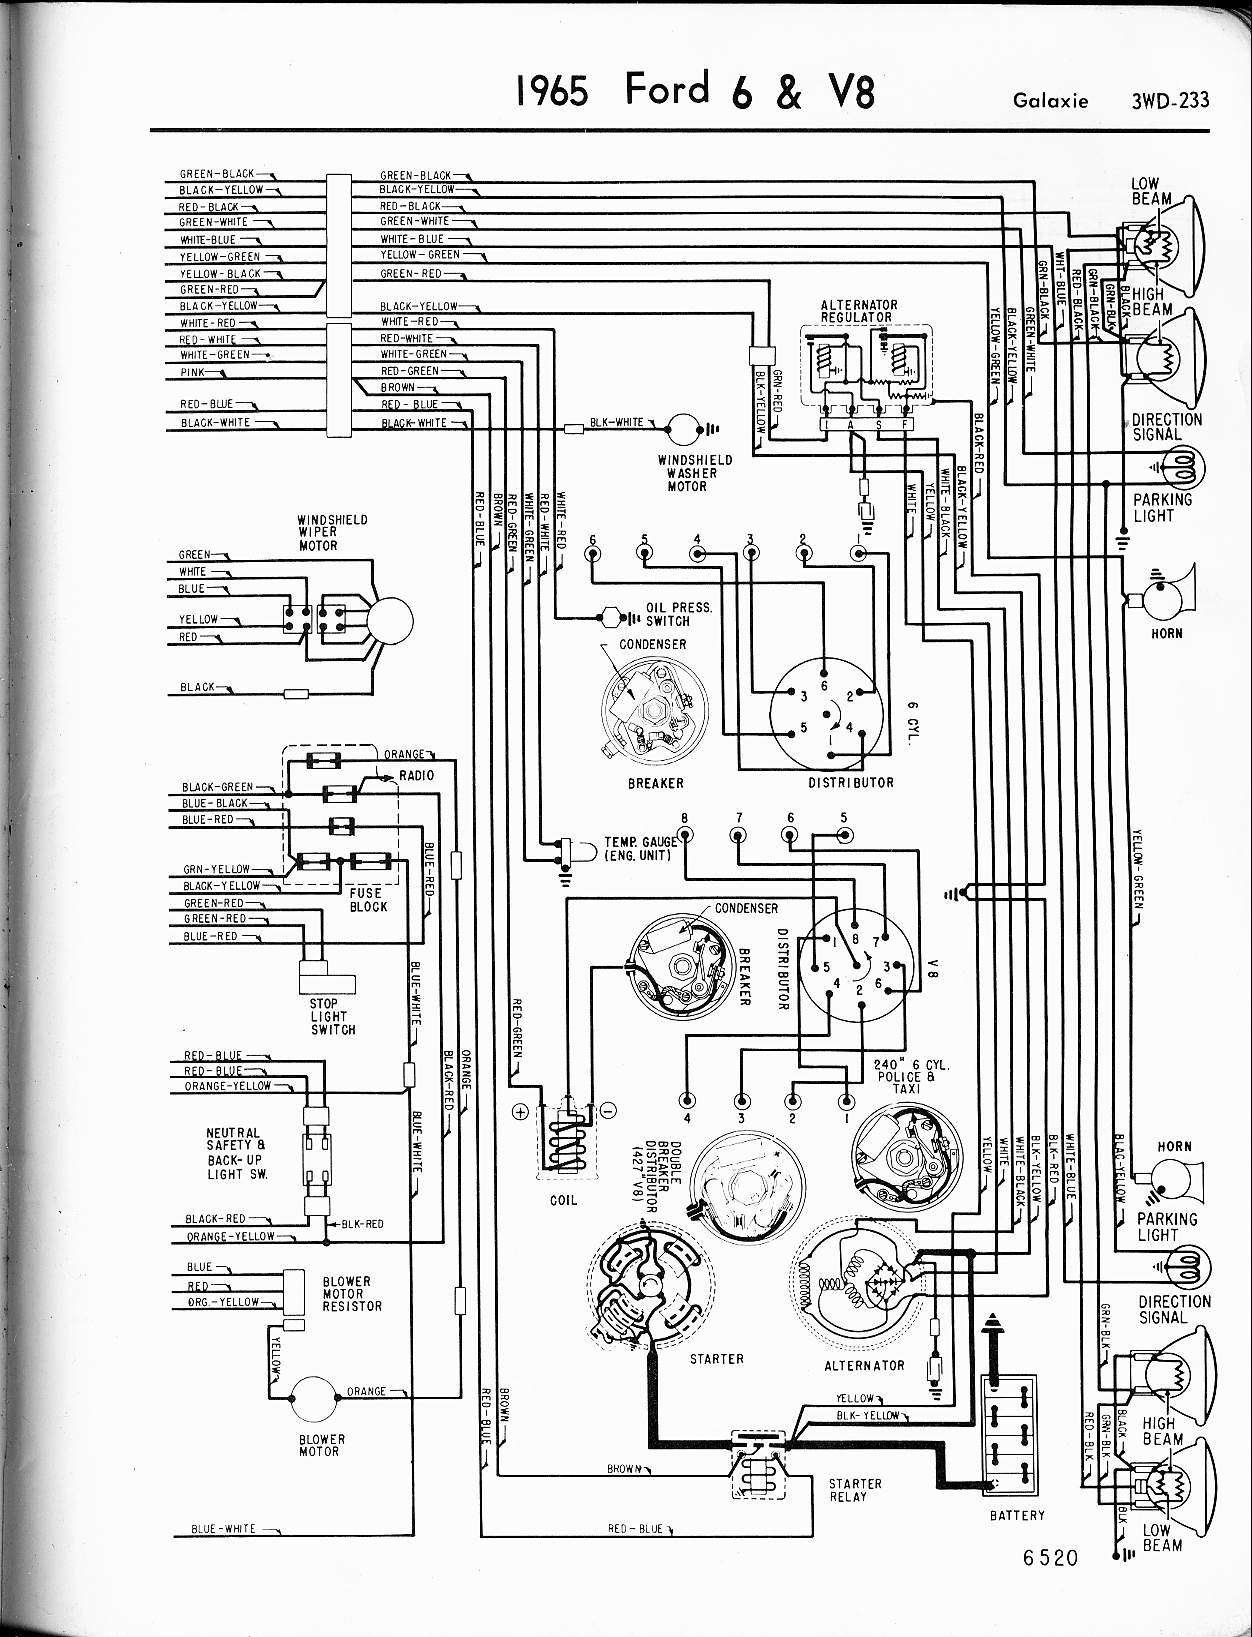 ford wiring manuals,wiring download free printable wiring diagrams 1974 Ford F100 Wiring Diagram 57 65 ford wiring diagrams 1974 ford f100 wiring diagram